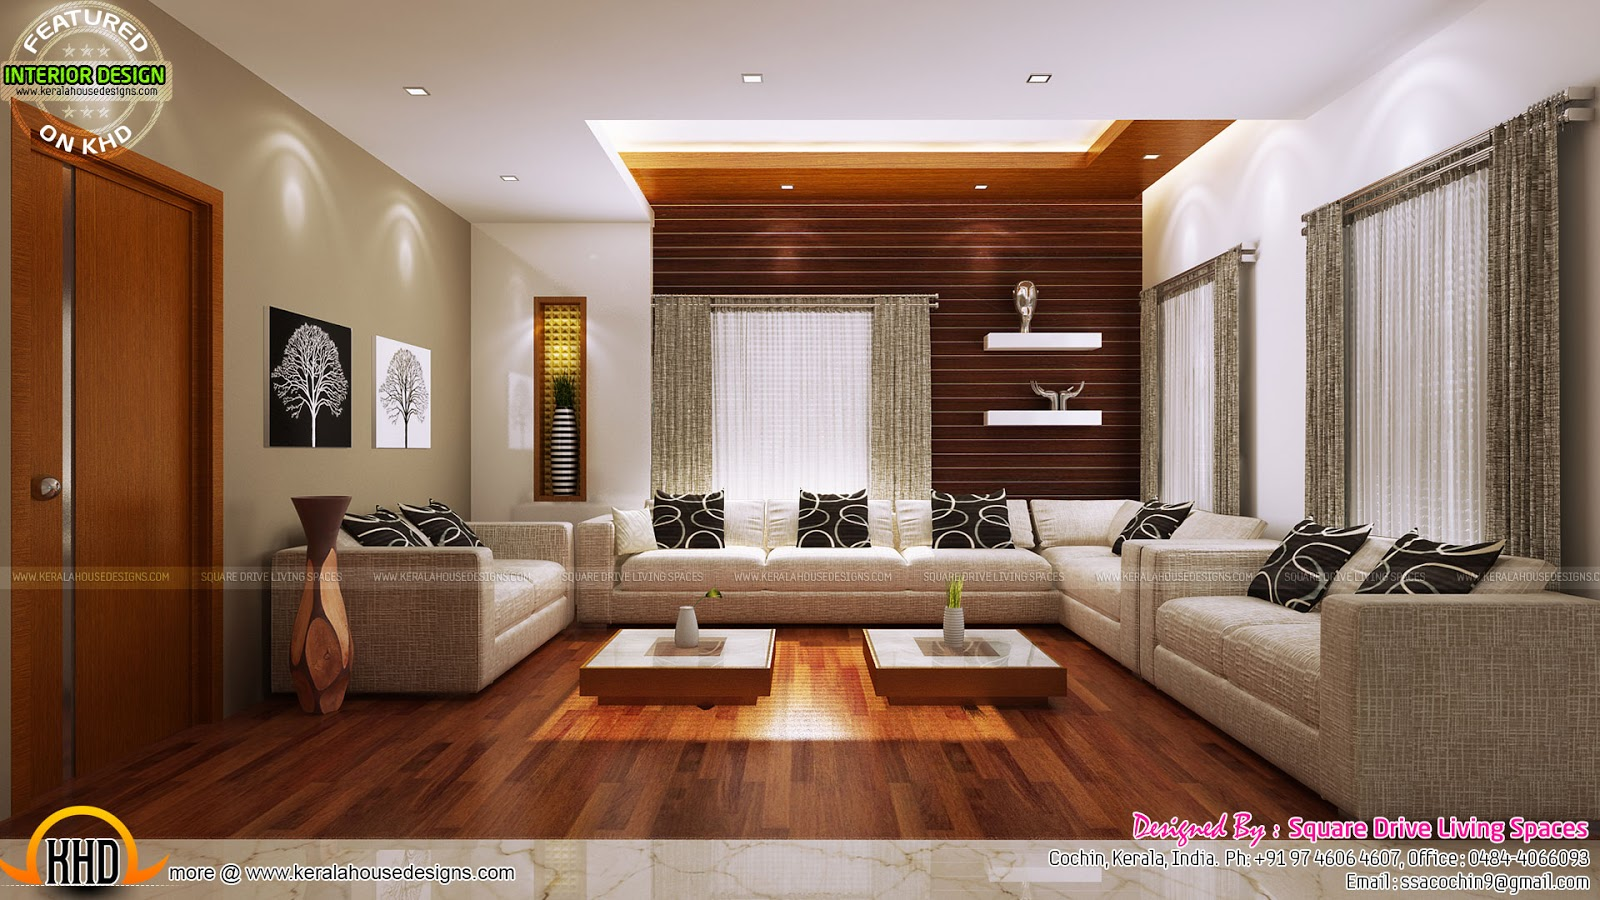 Excellent kerala interior design kerala home design and for Interior house plans with photos